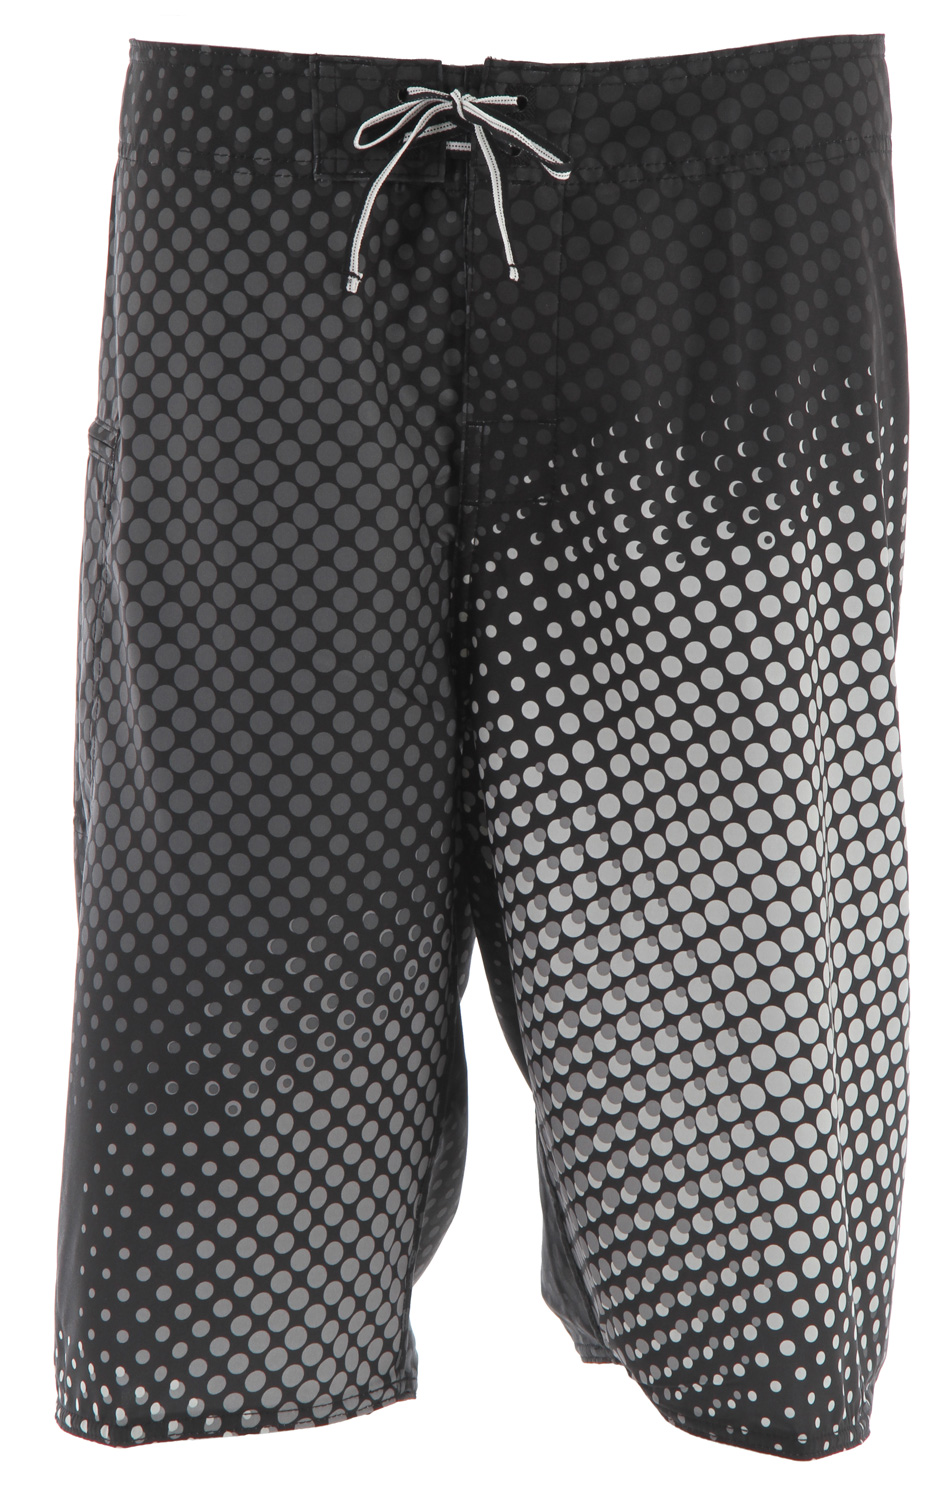 "Surf Key Features of the DC Fulltone Boardshorts: Zip pocket Neo fly Lycra lined bottoms Seamless side panels 21"" outseam 4 way mechanical stretch - $24.46"